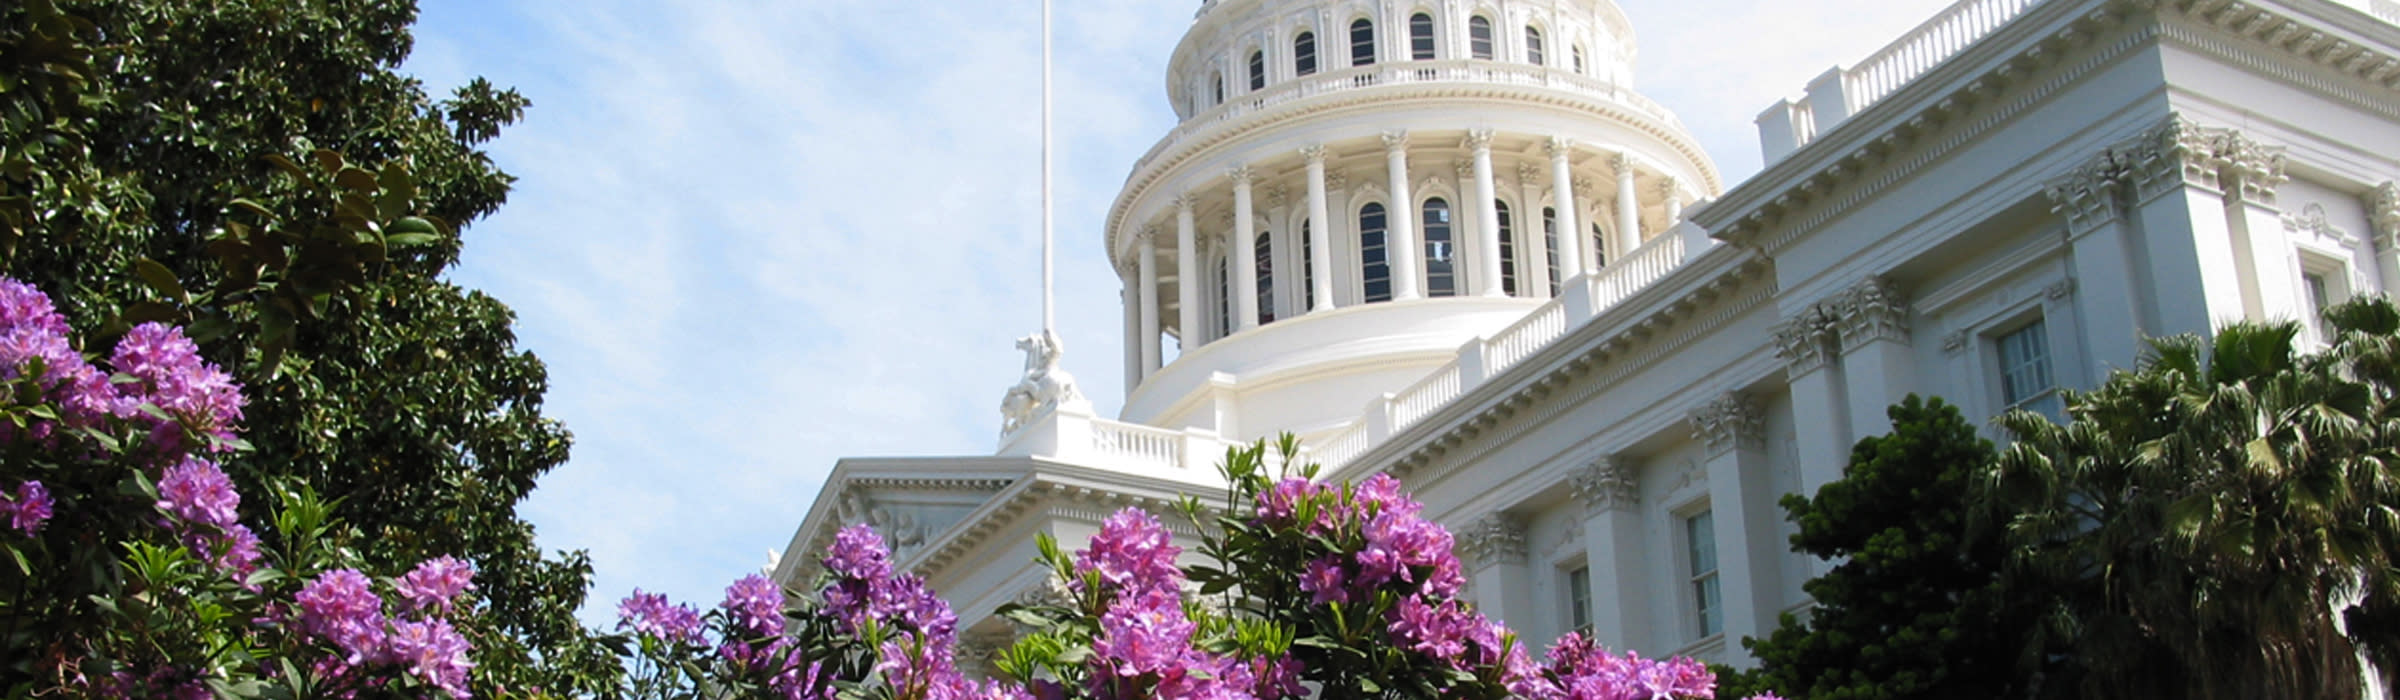 Capitol With Flowers